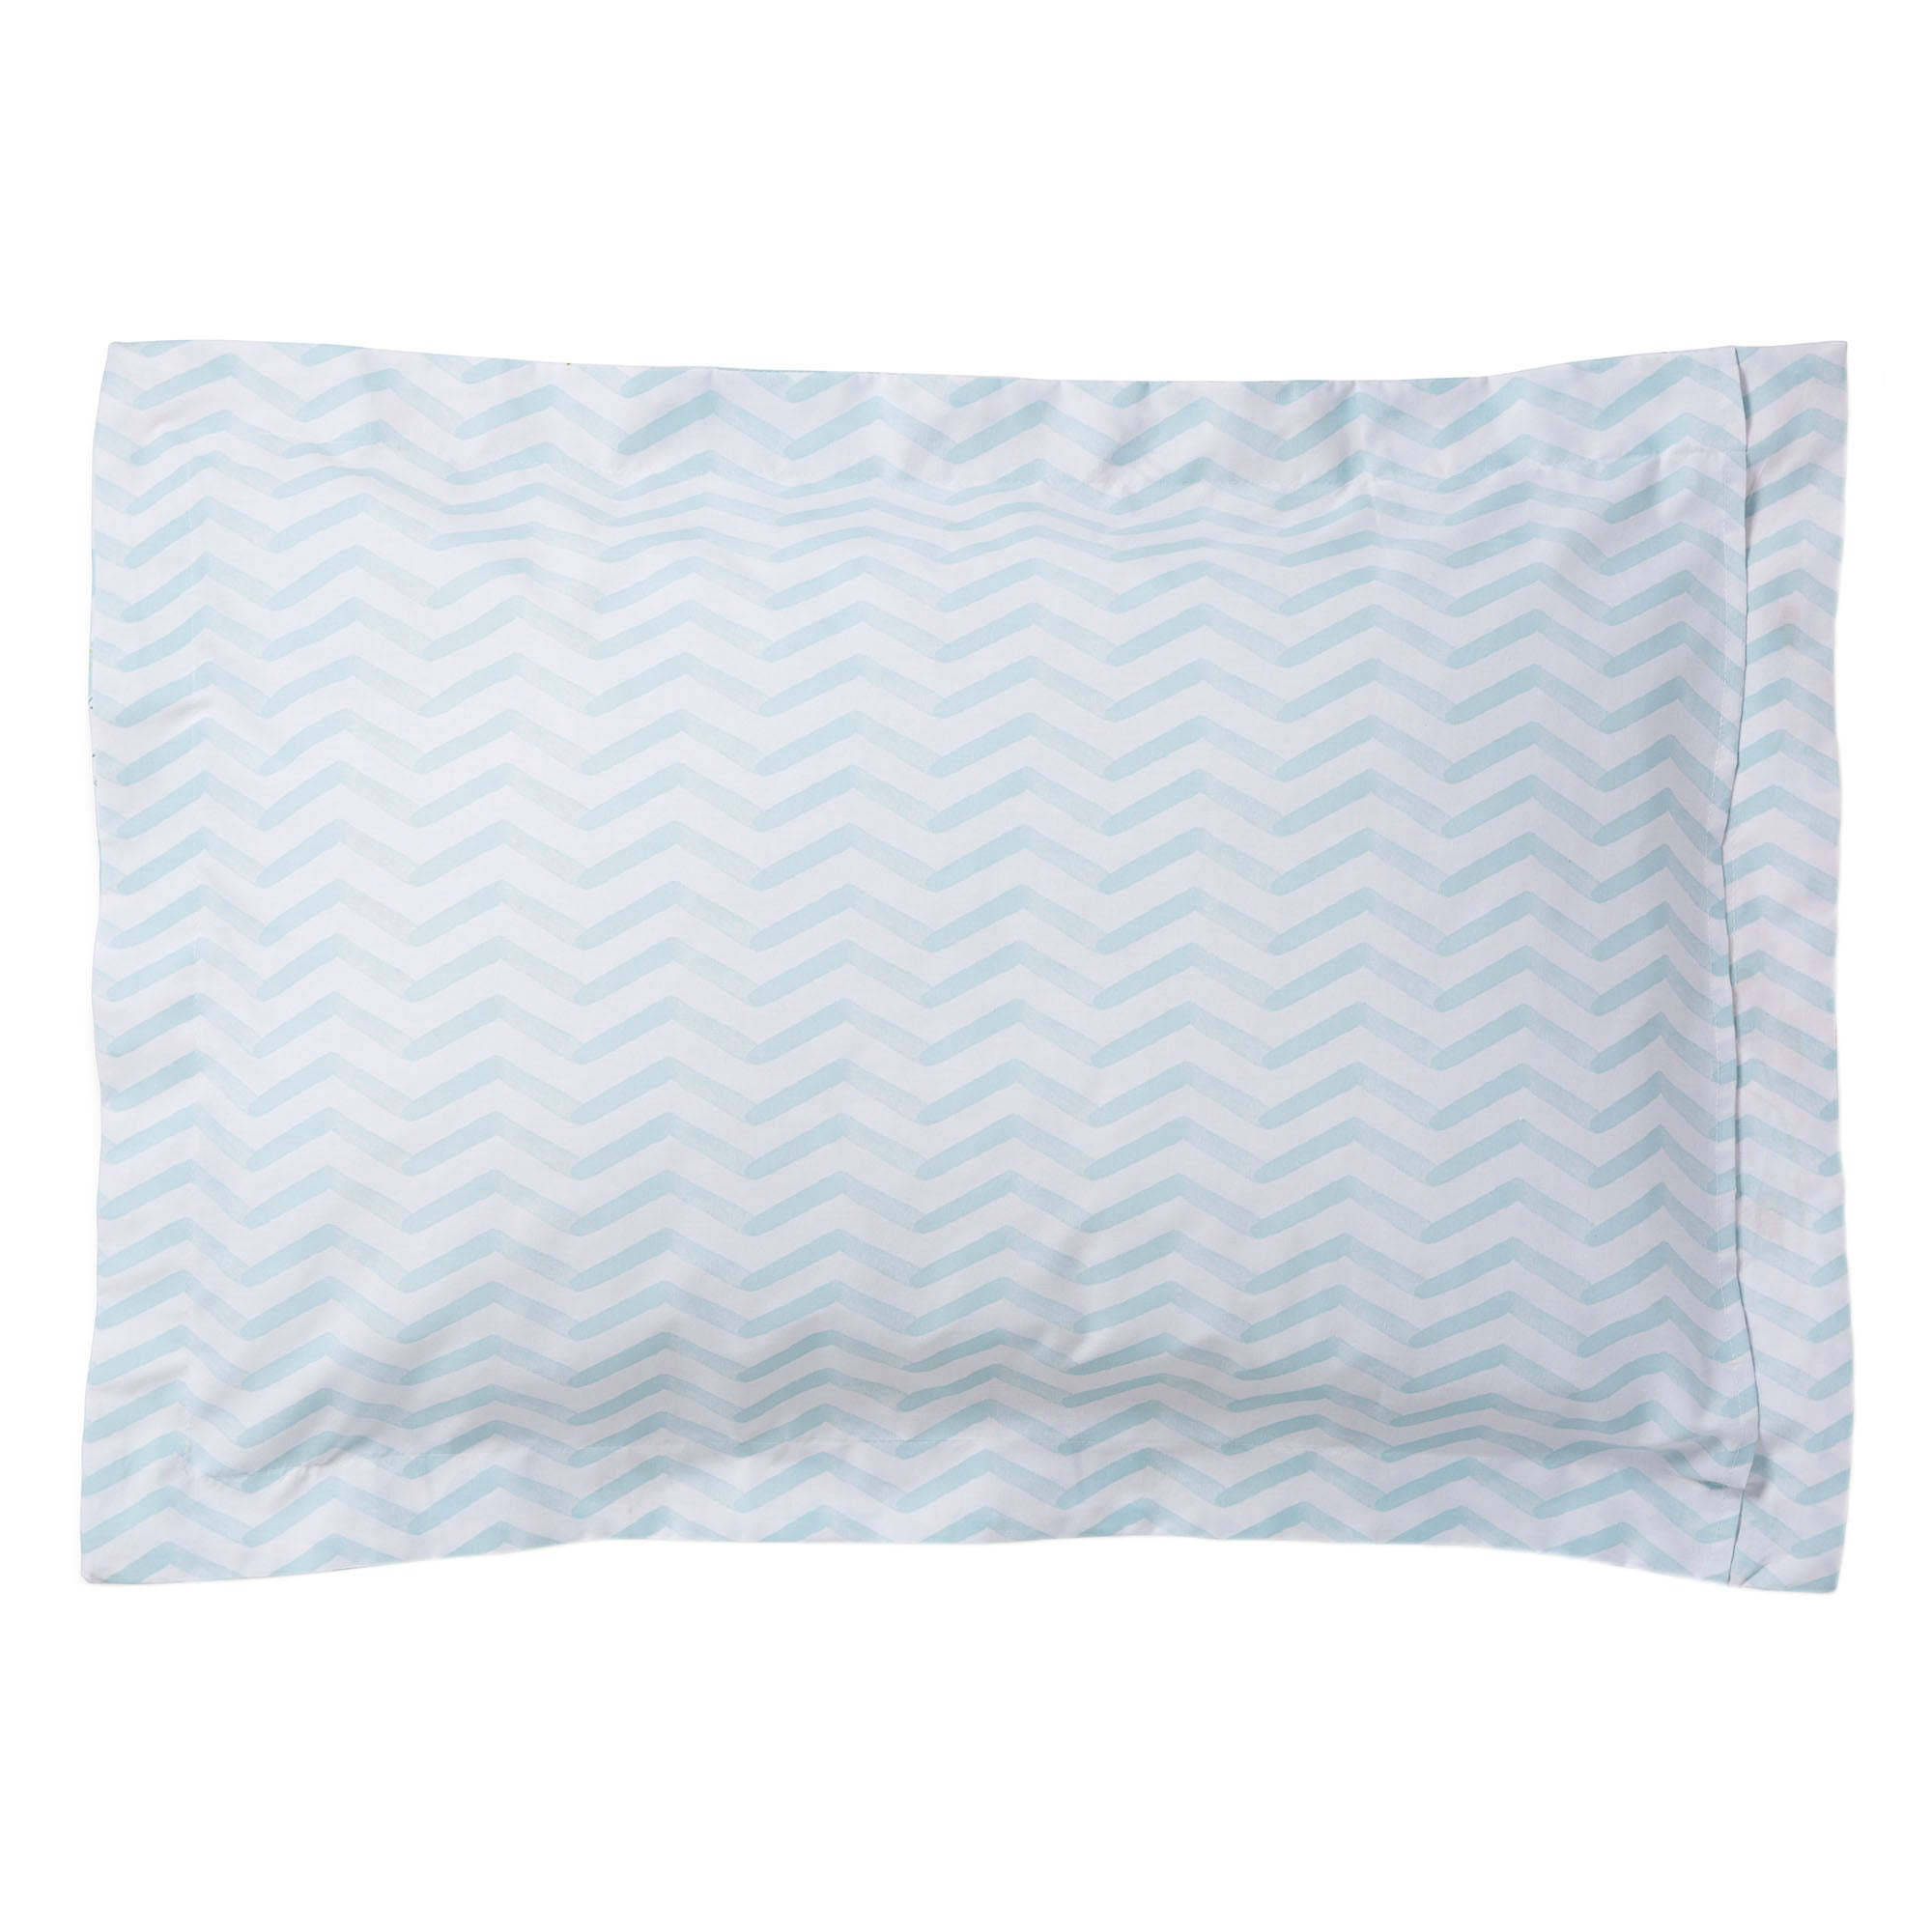 Image of Anya Green Oxford Pillowcase Green